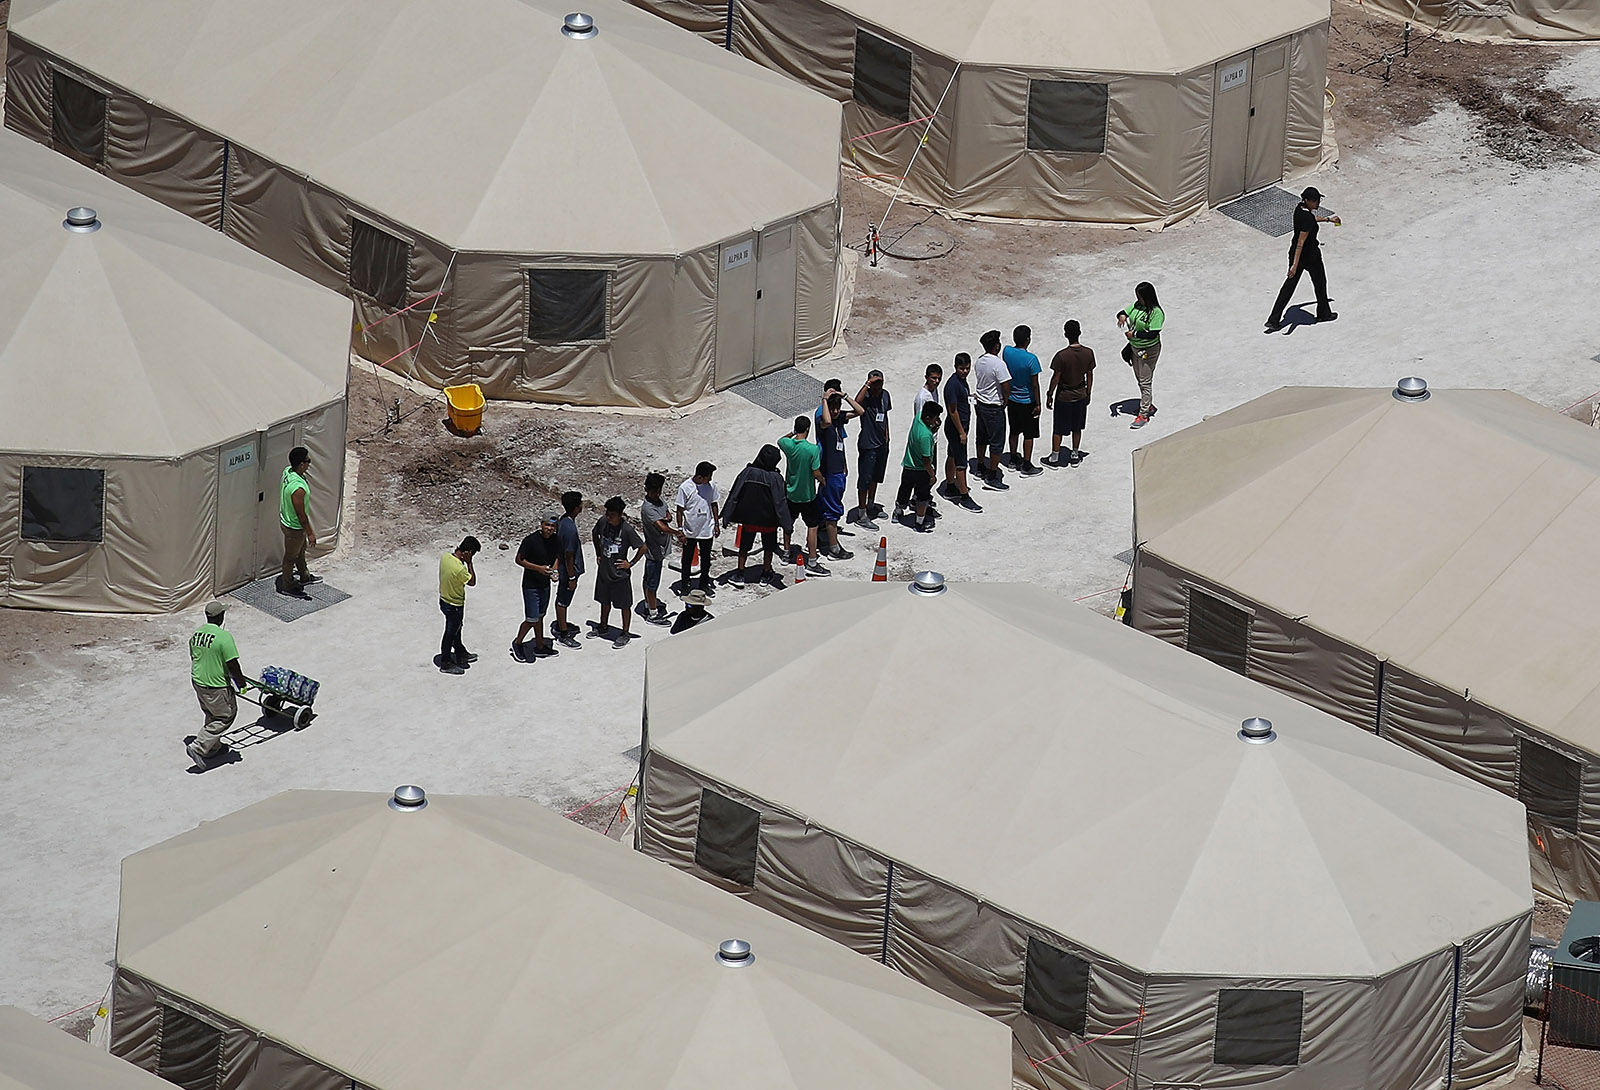 Children and staff at the Trump administration's tent facility for detaining migrant children separated from their parents, Tornillo, Texas, June 19, 2018